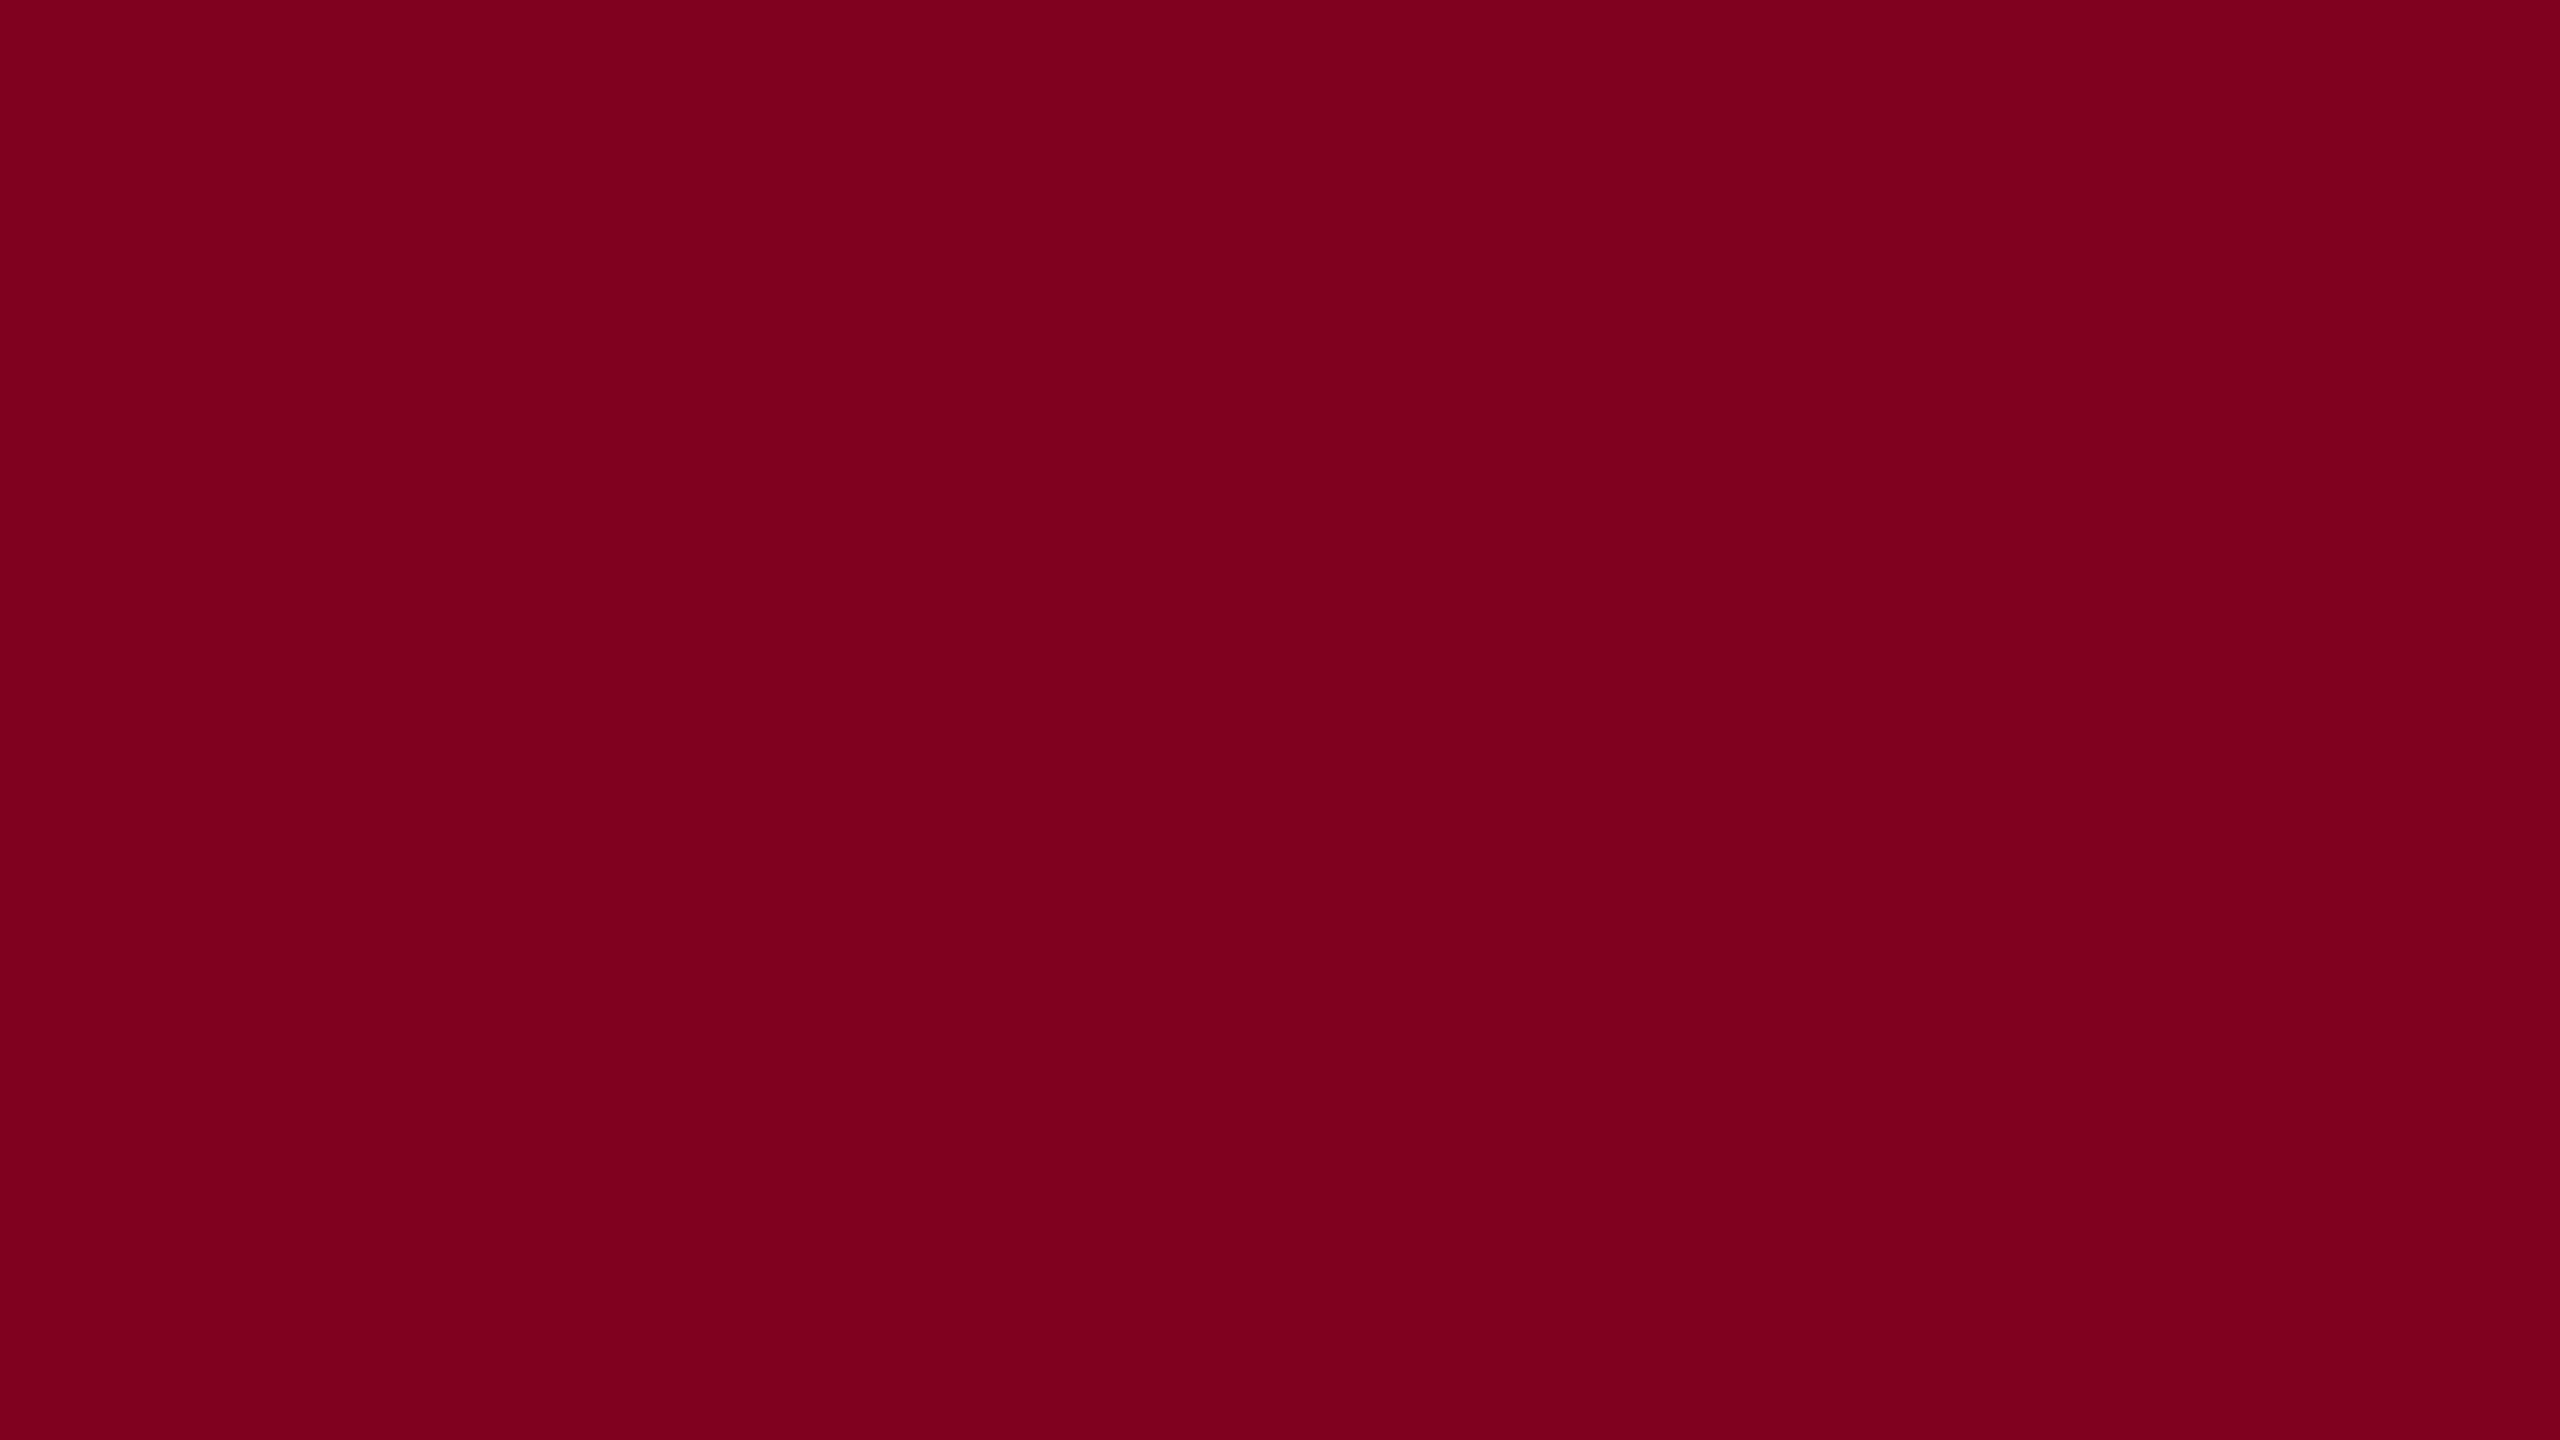 2560x1440 Burgundy Solid Color Background